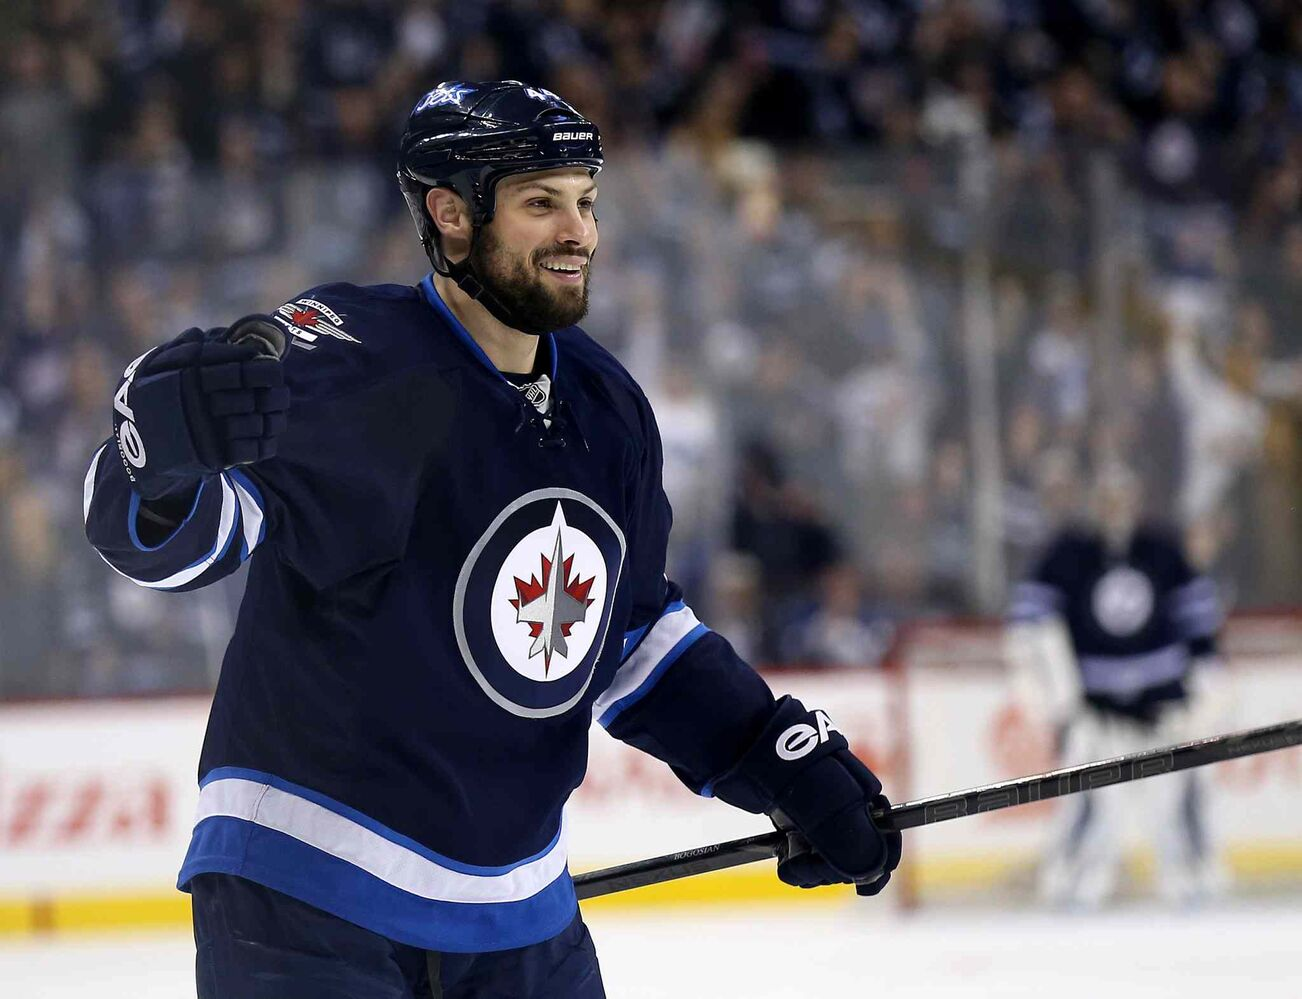 Winnipeg Jets' Zach Bogosian (44) celebrates his second-period goal against the Toronto Maple Leafs at MTS Centre Saturday. (Trevor Hagan / Winnipeg Free Press)